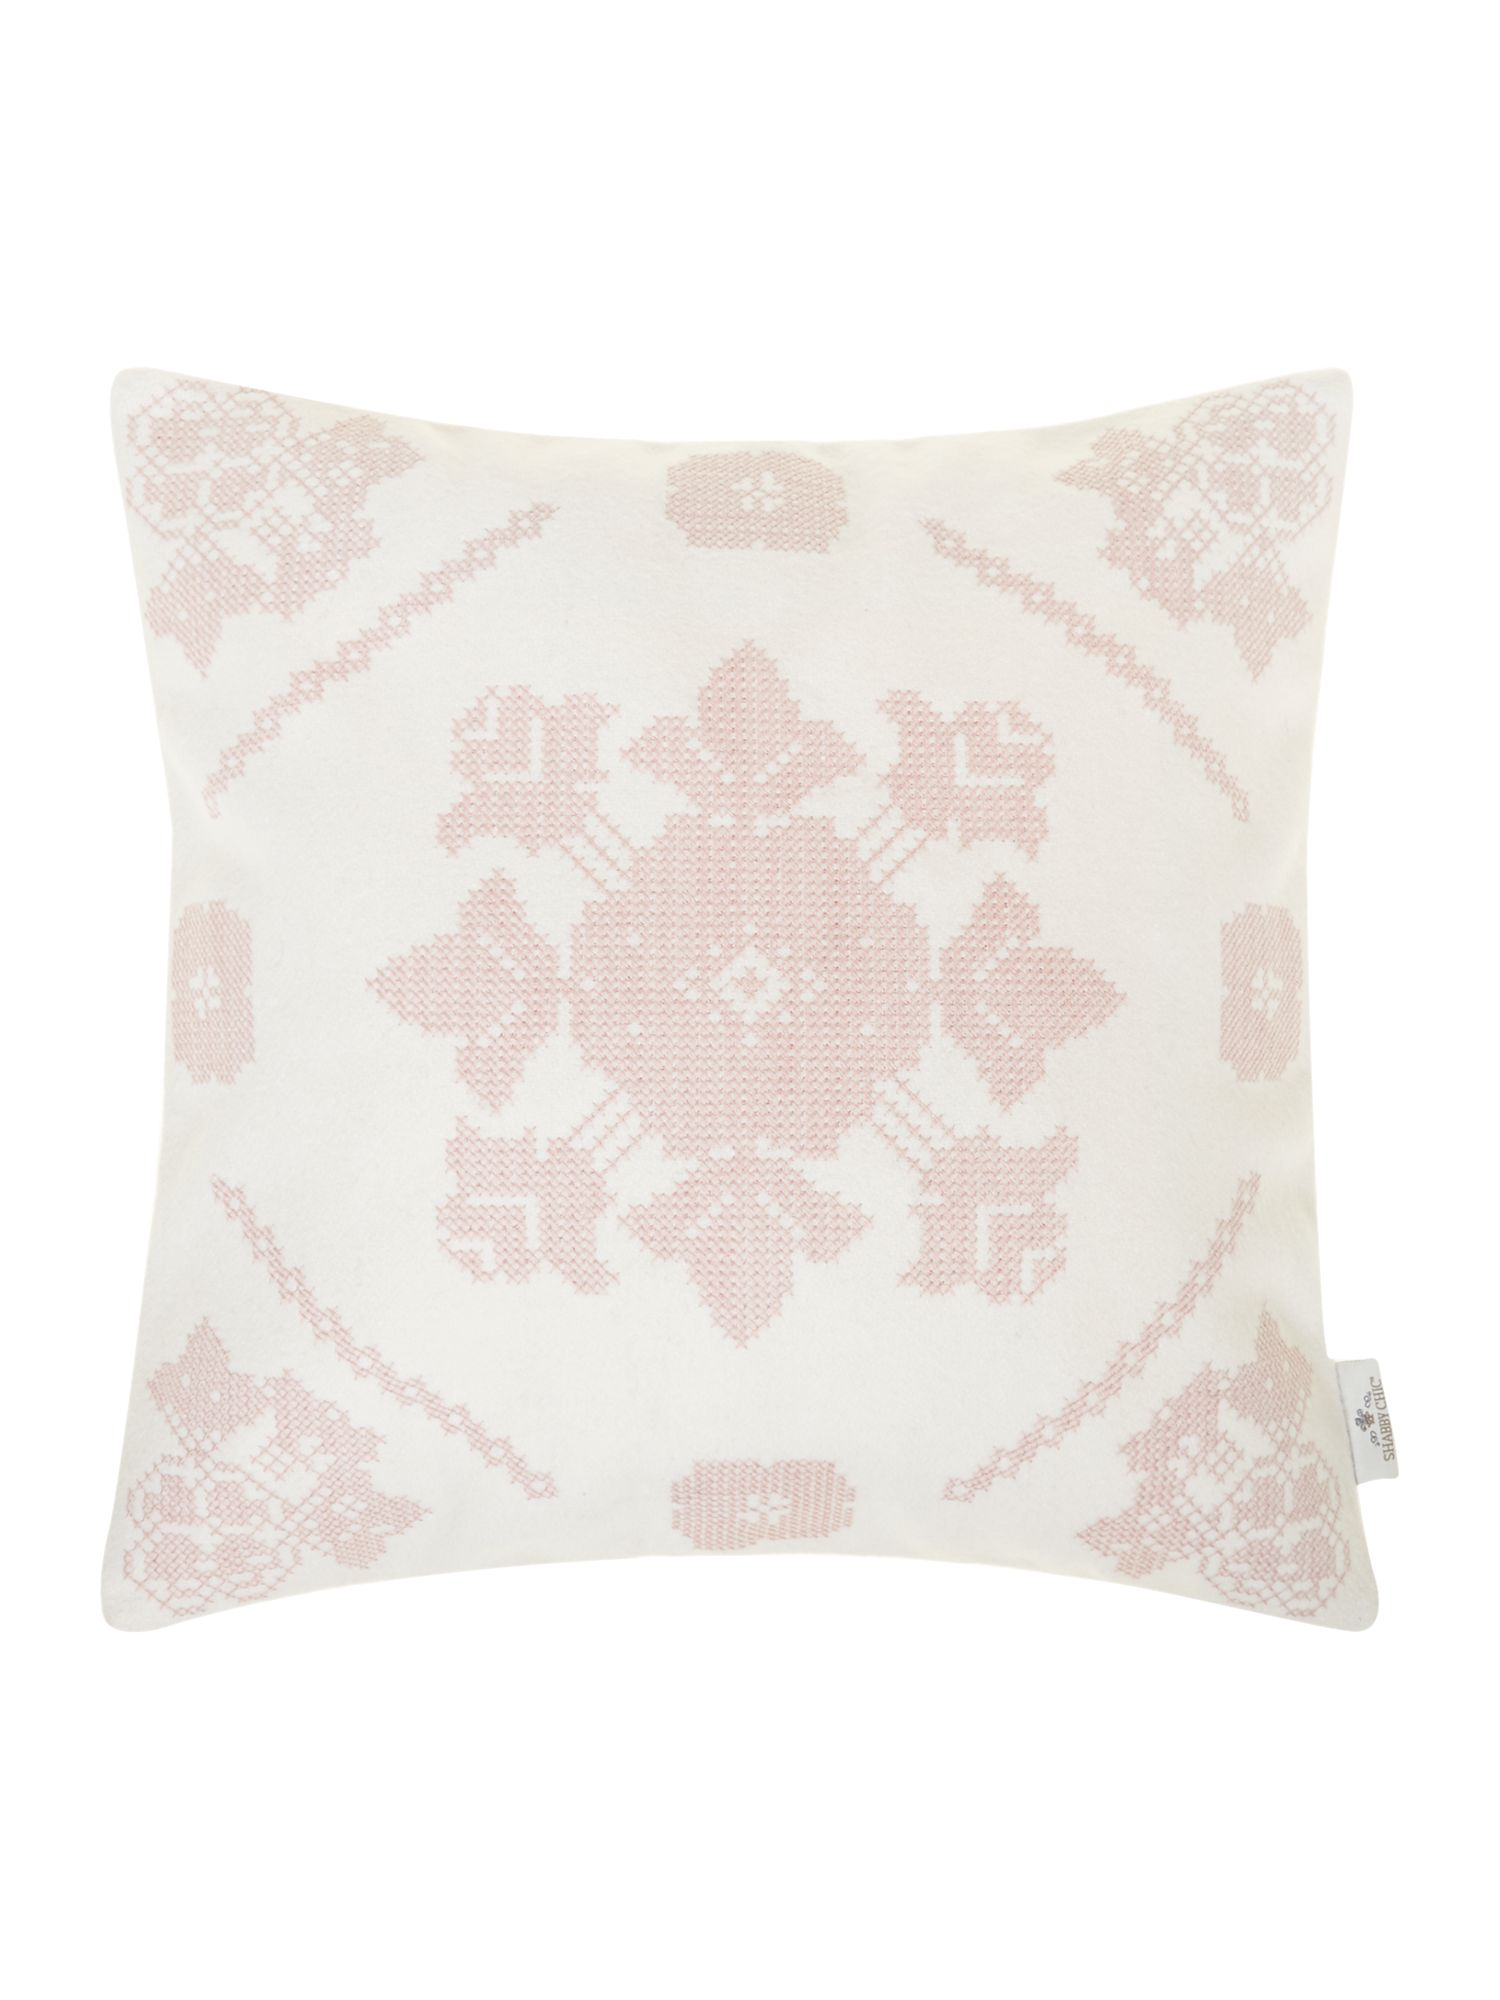 Small tapestry cushion, blush pink